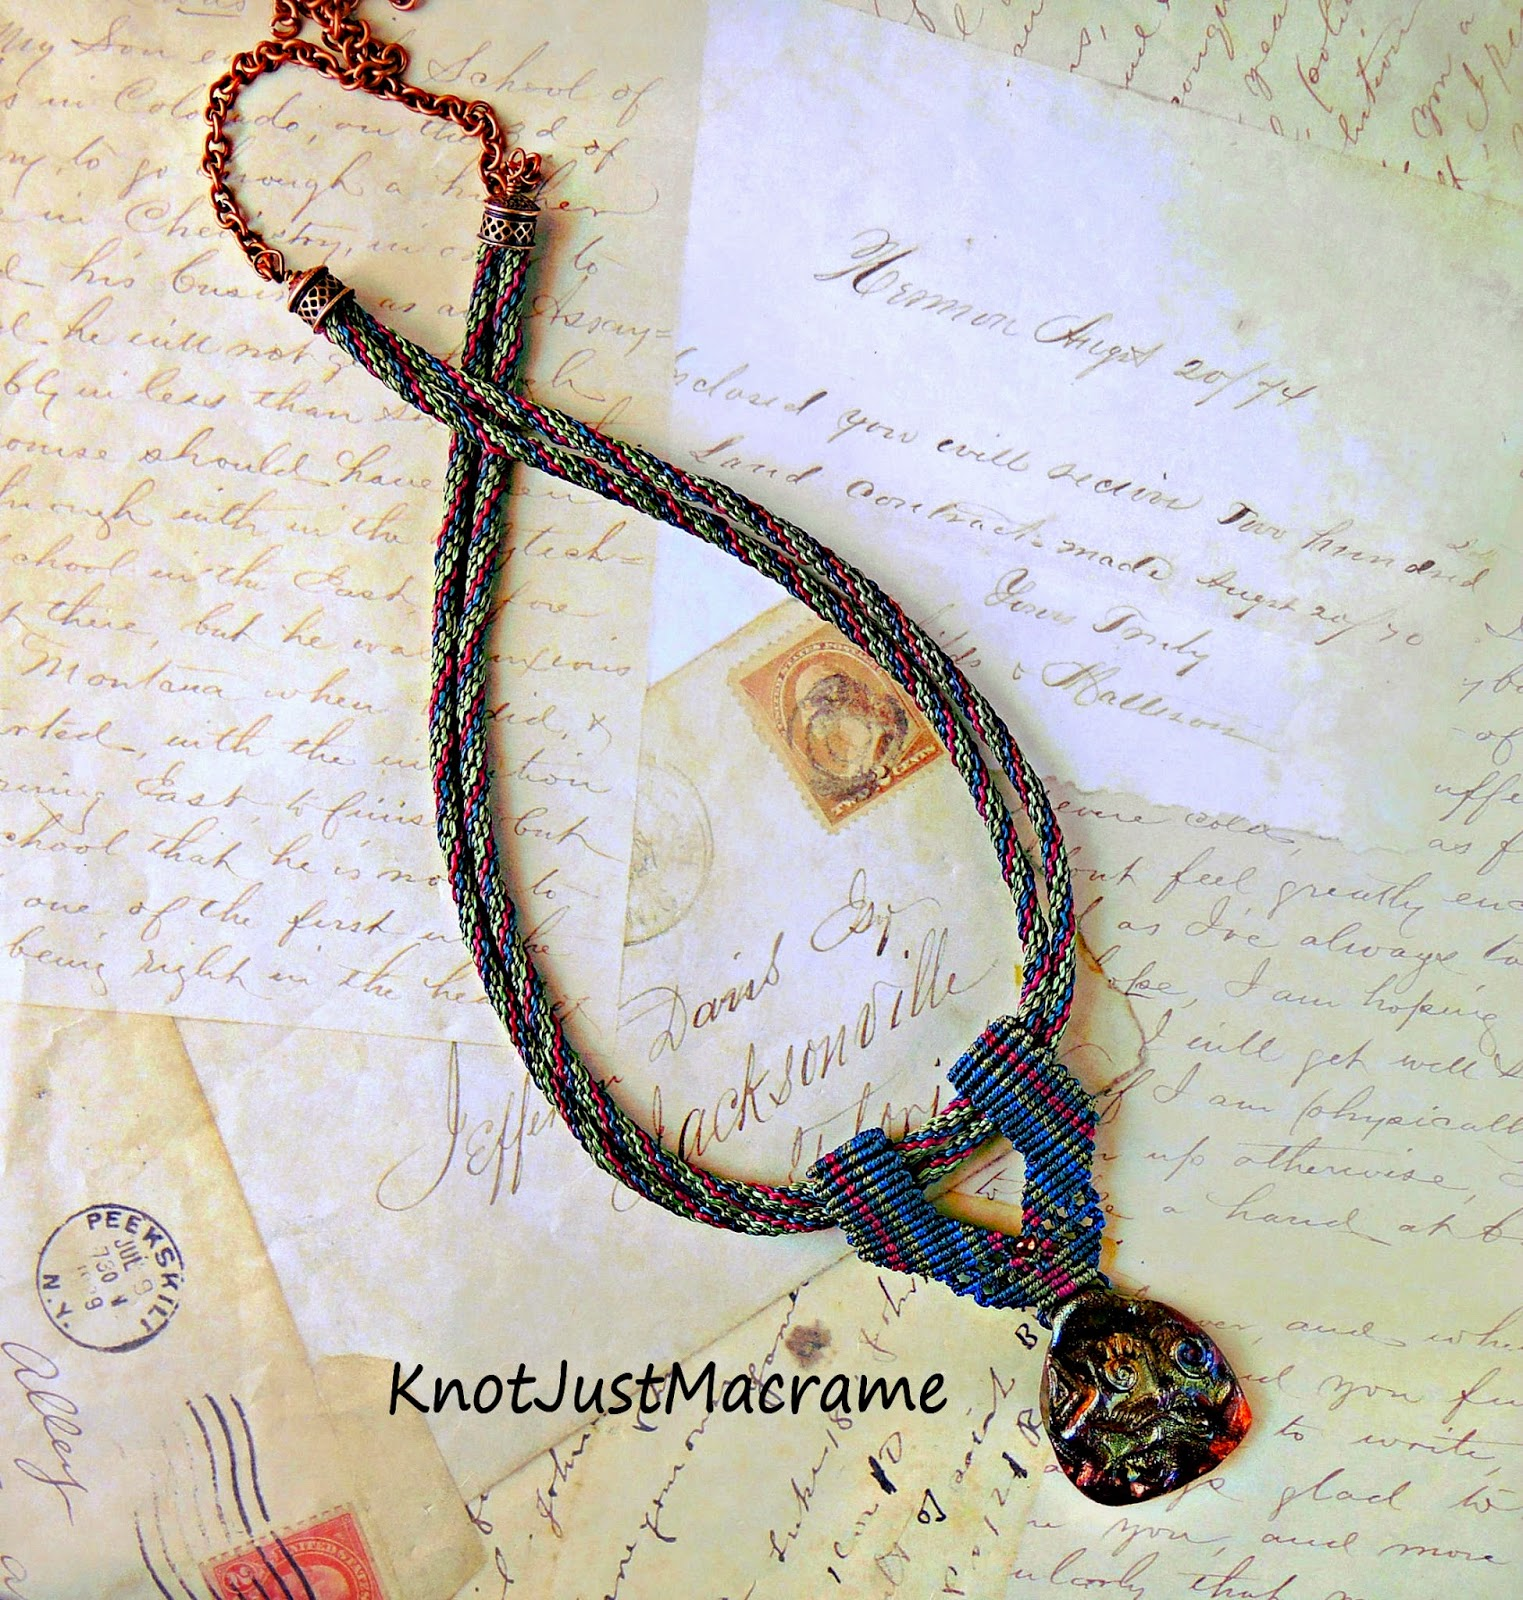 Micro macrame necklace knotted by Sherri Stokey of Knot Just Macrame.